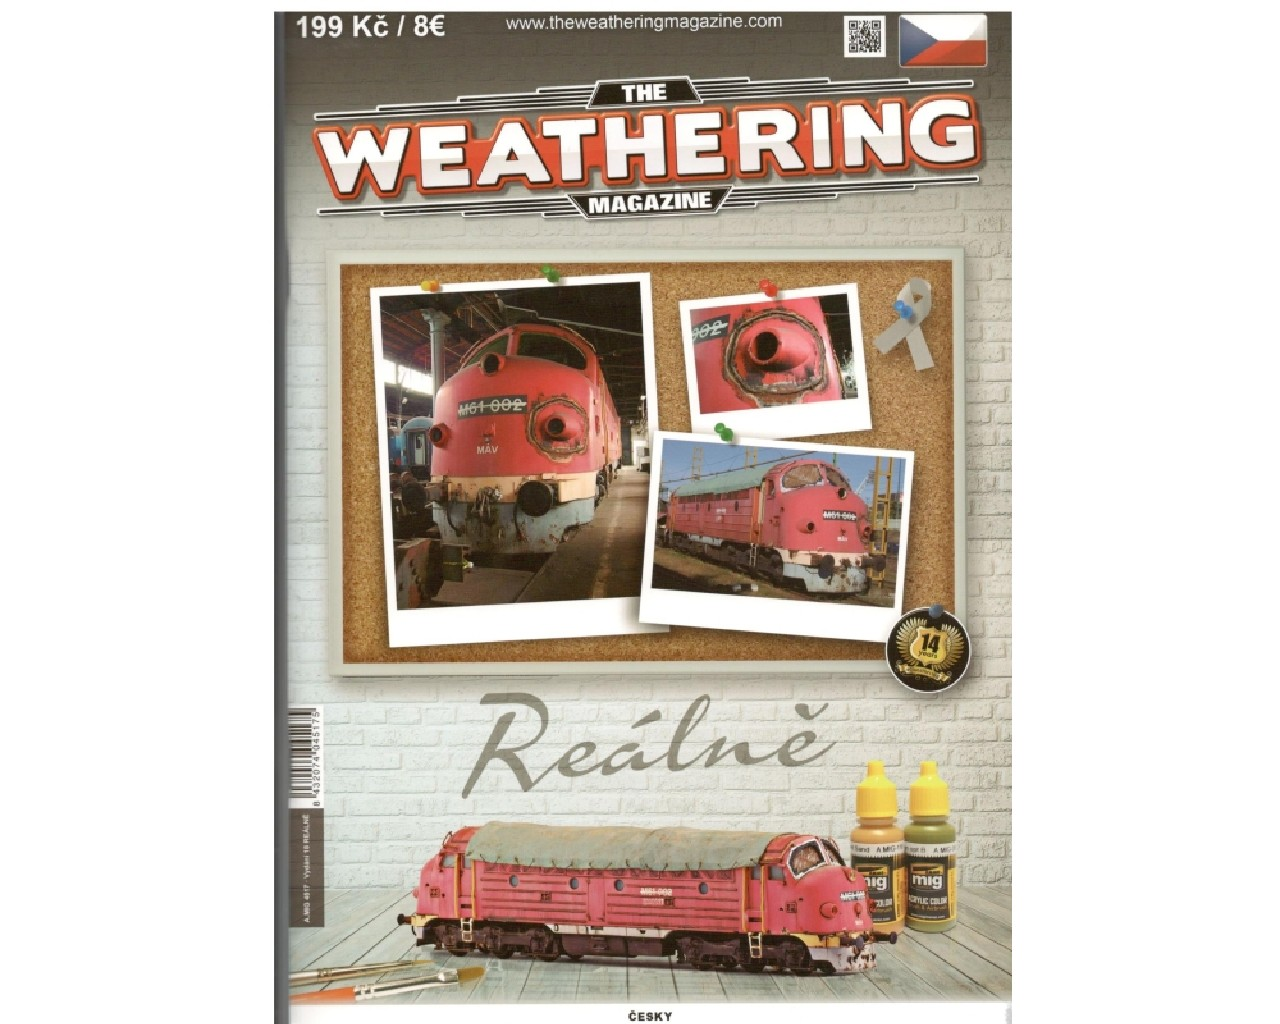 The Weathering Magazine - Reálne